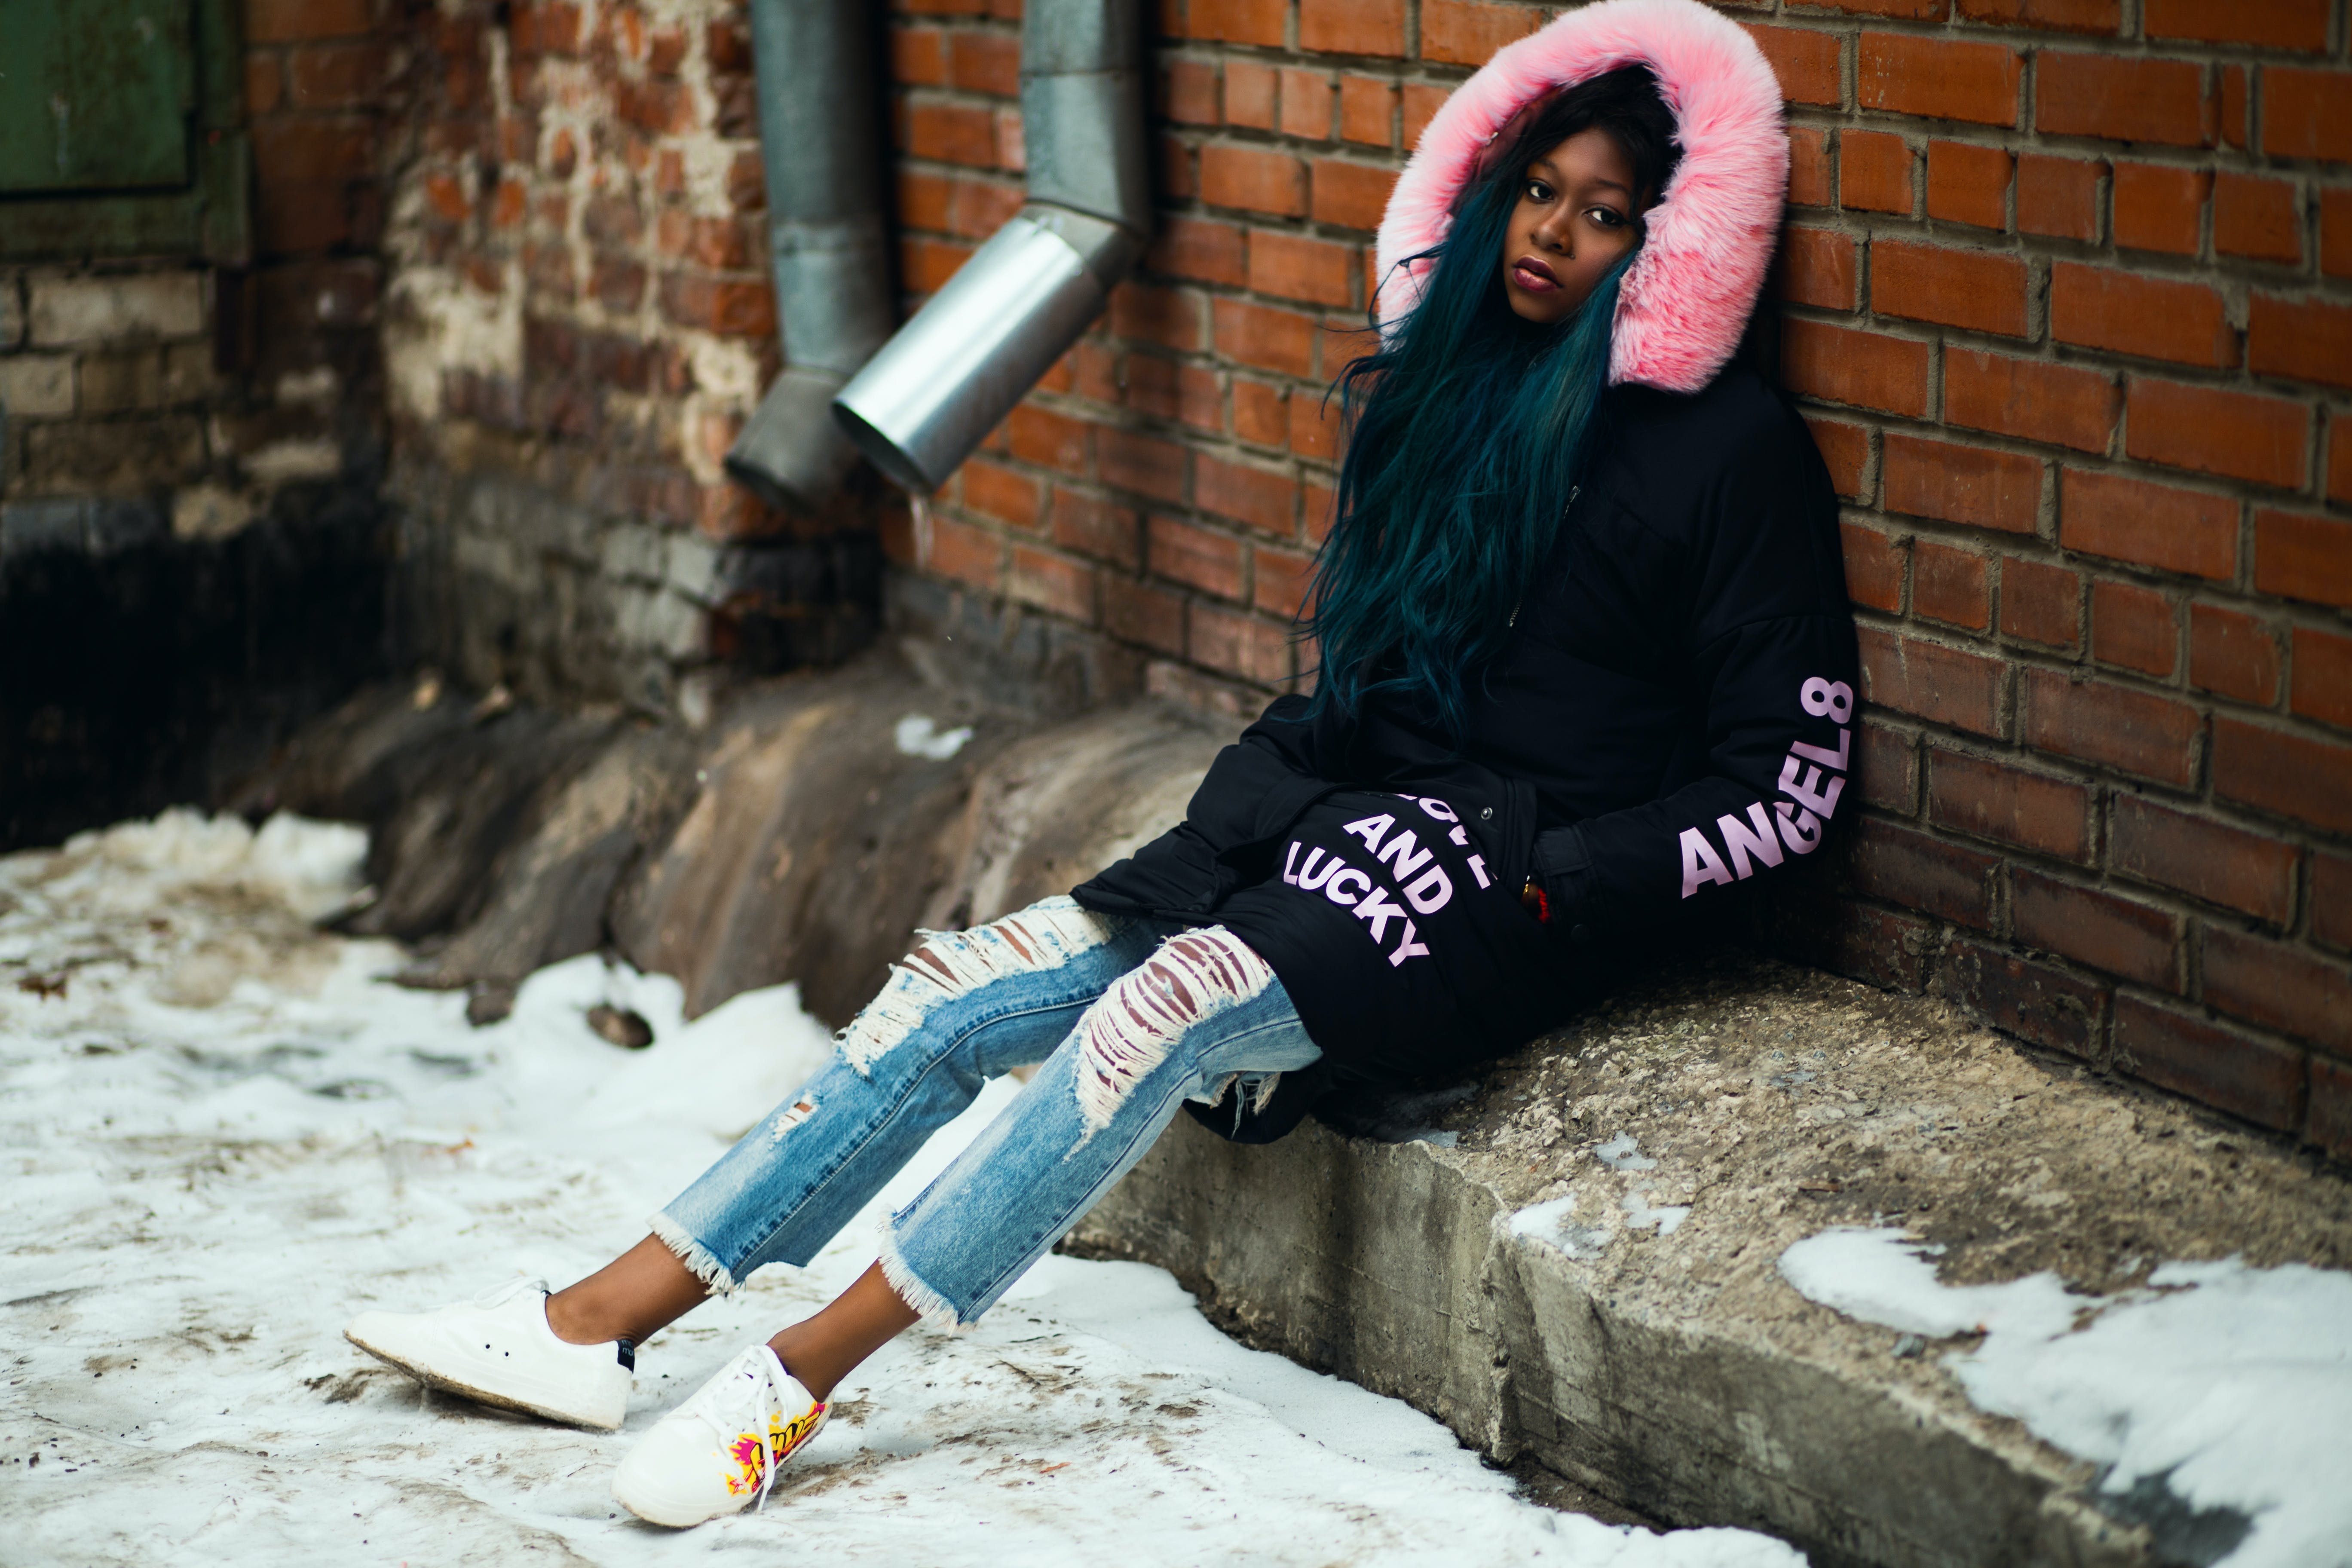 Woman Wearing Black and Pink Parka Leaning on Brown Brick Wall